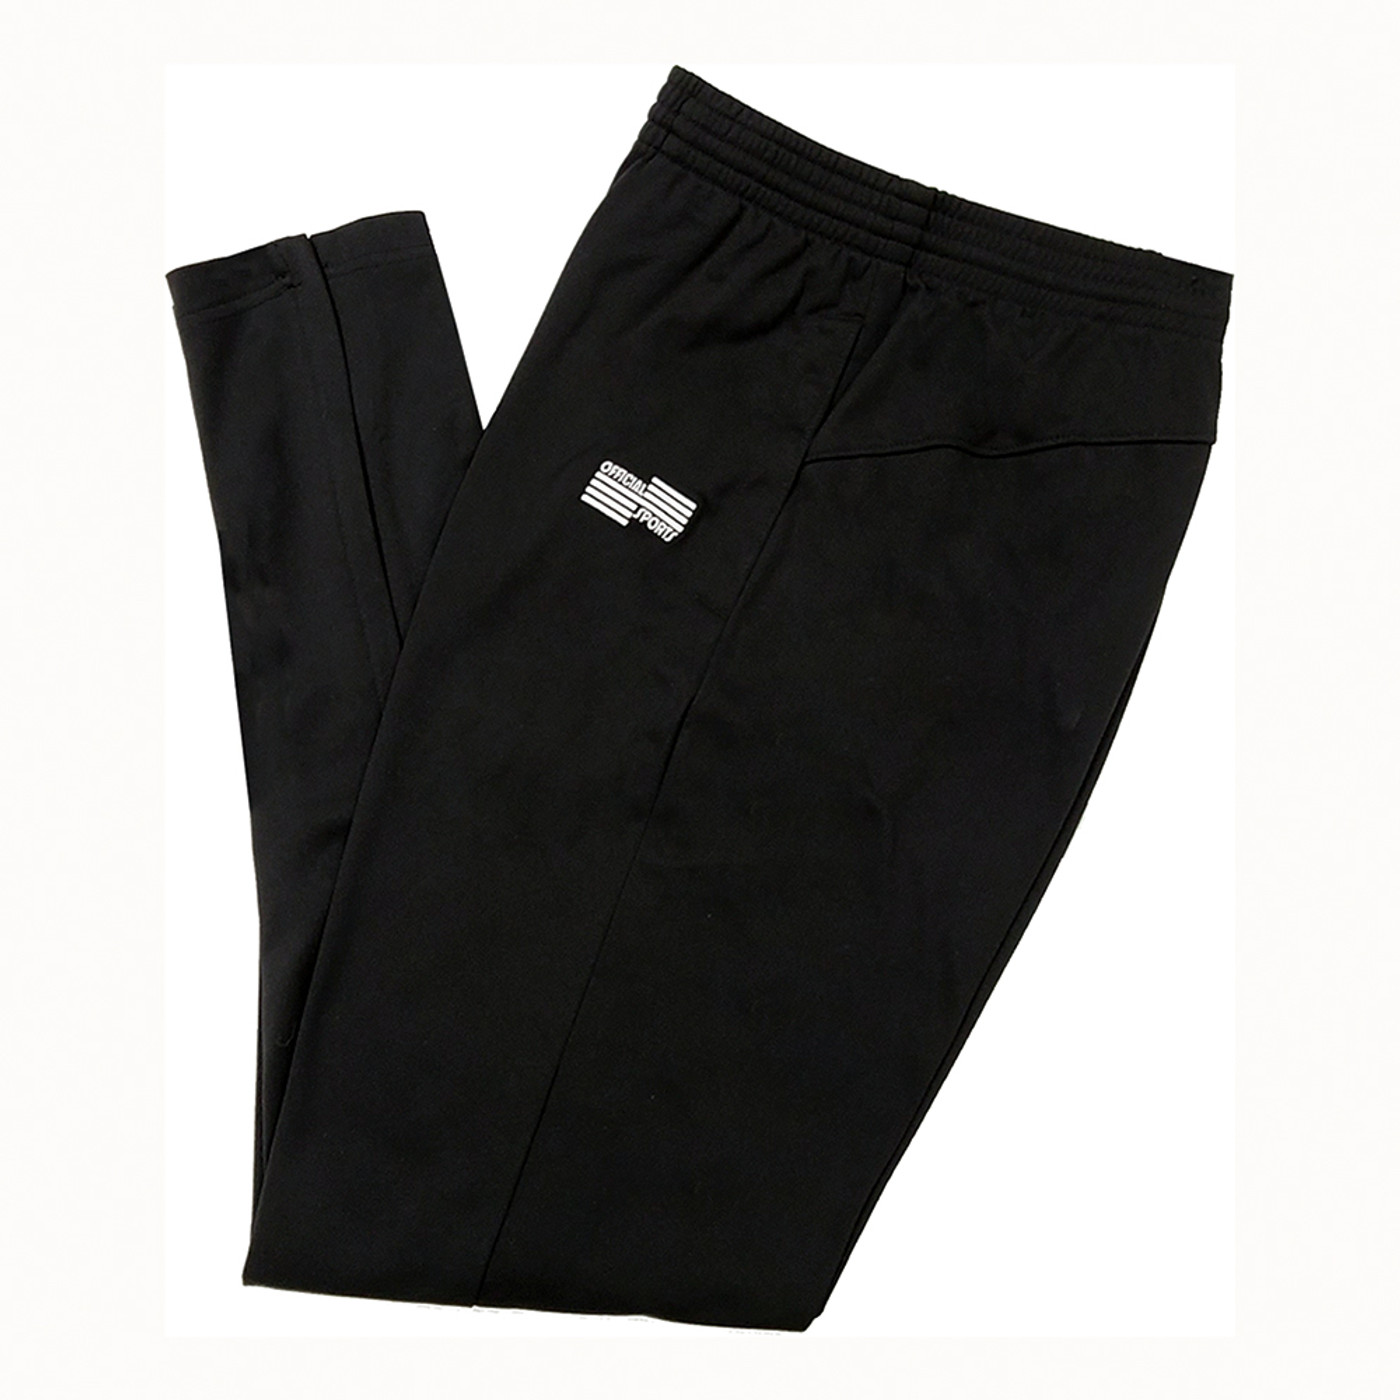 W1270PN NISOA Women's Tapered Warm-Up Pant